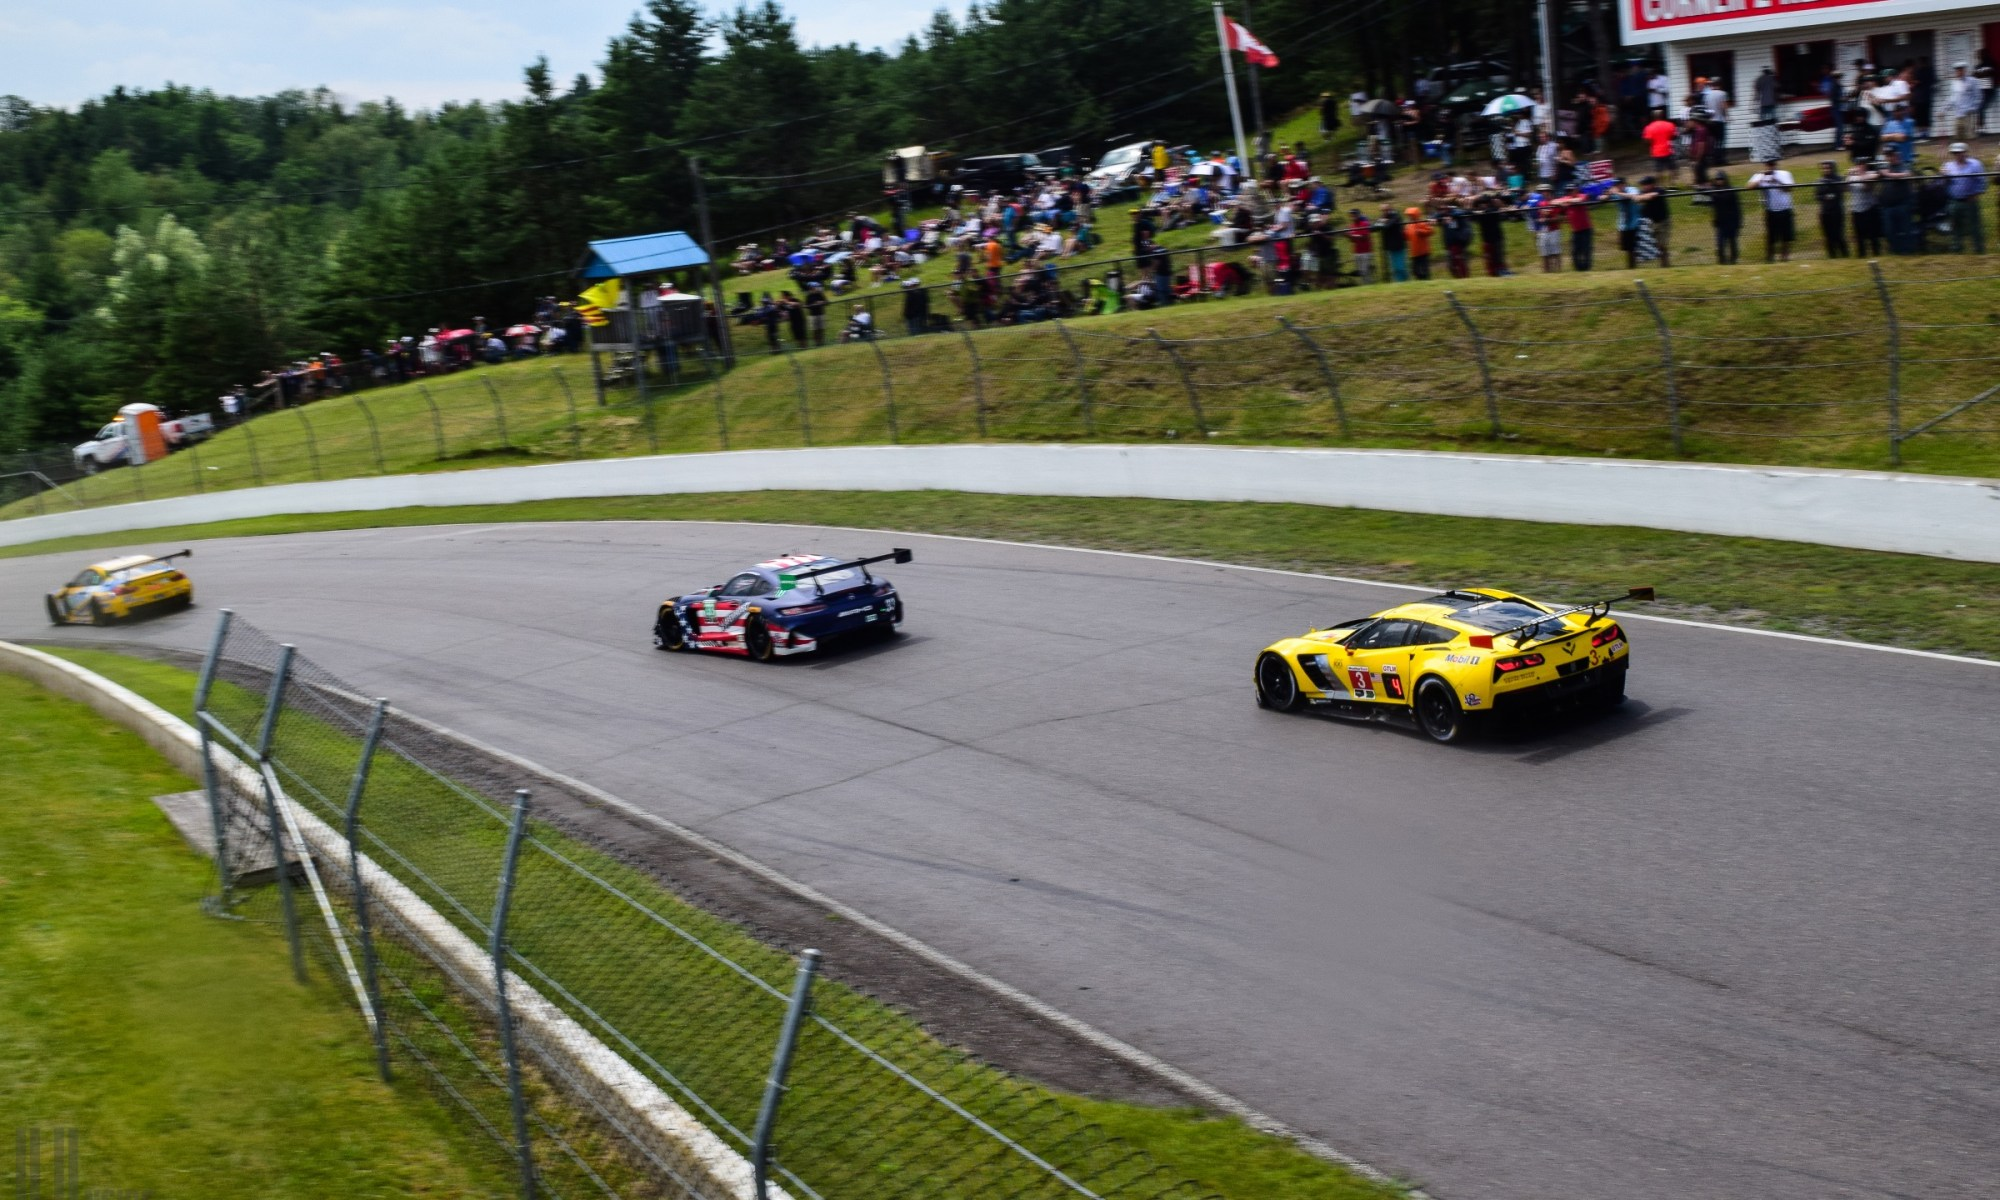 Corvette Racing at the IMSA Mobil 1 SportsCar Grand Prix, featuring a hot lap around CTMP with legendary Corvette Racing driver Ron Fellows in a 650 hp C7 Corvette Z06!